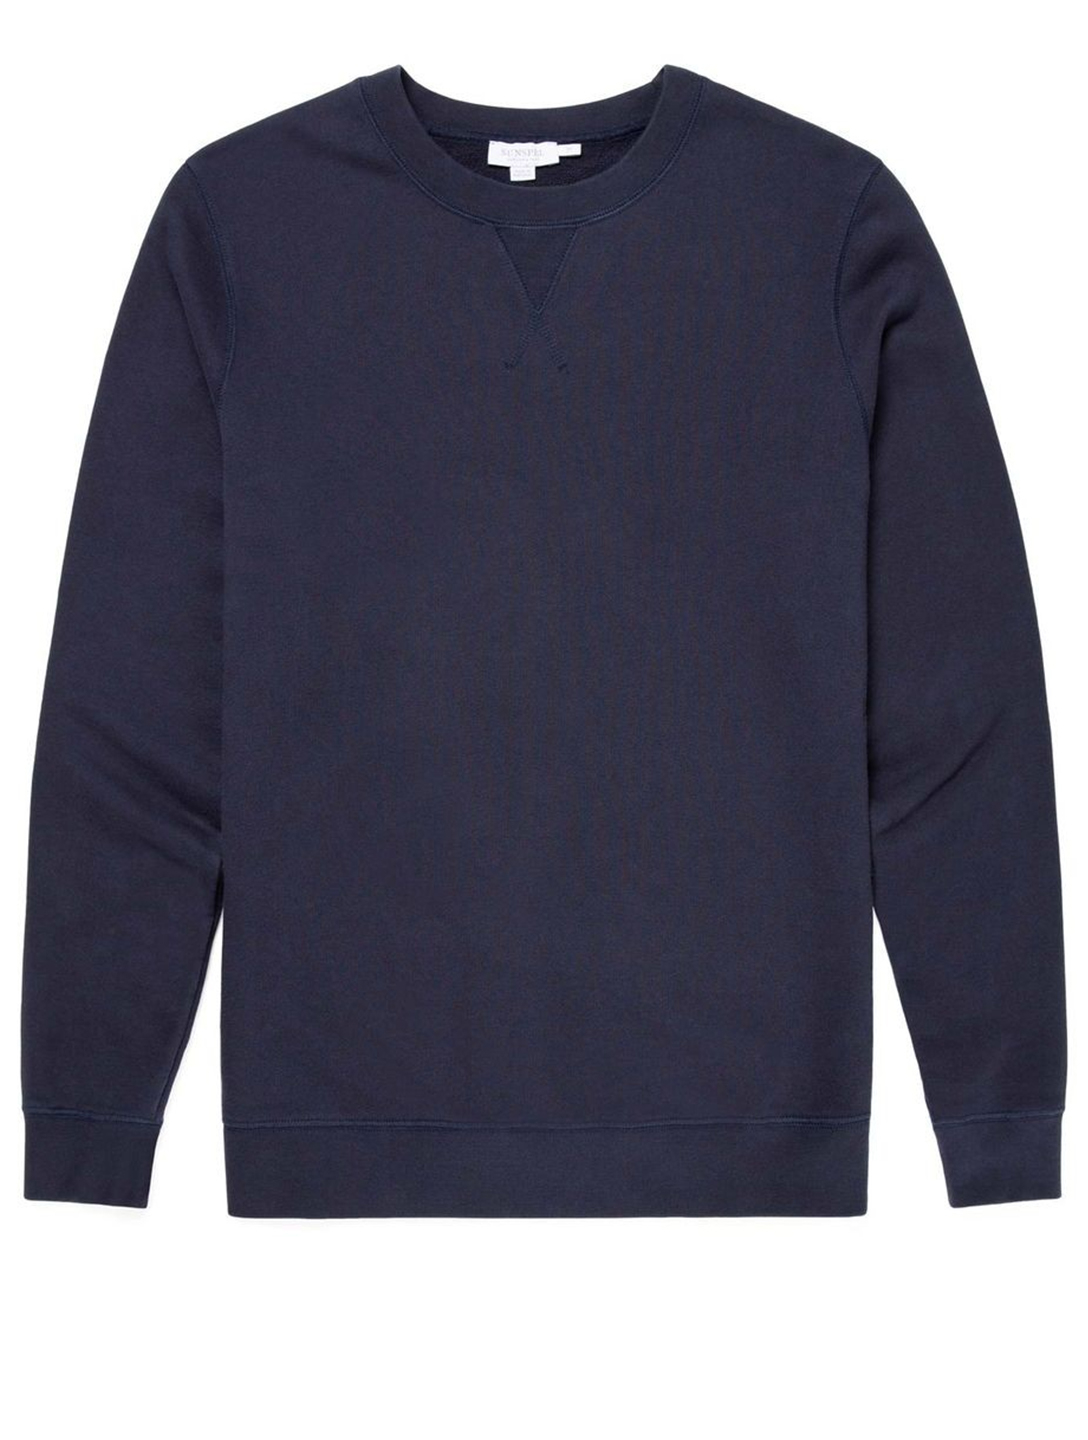 SUNSPEL Cotton Crewneck Sweatshirt Men's Blue